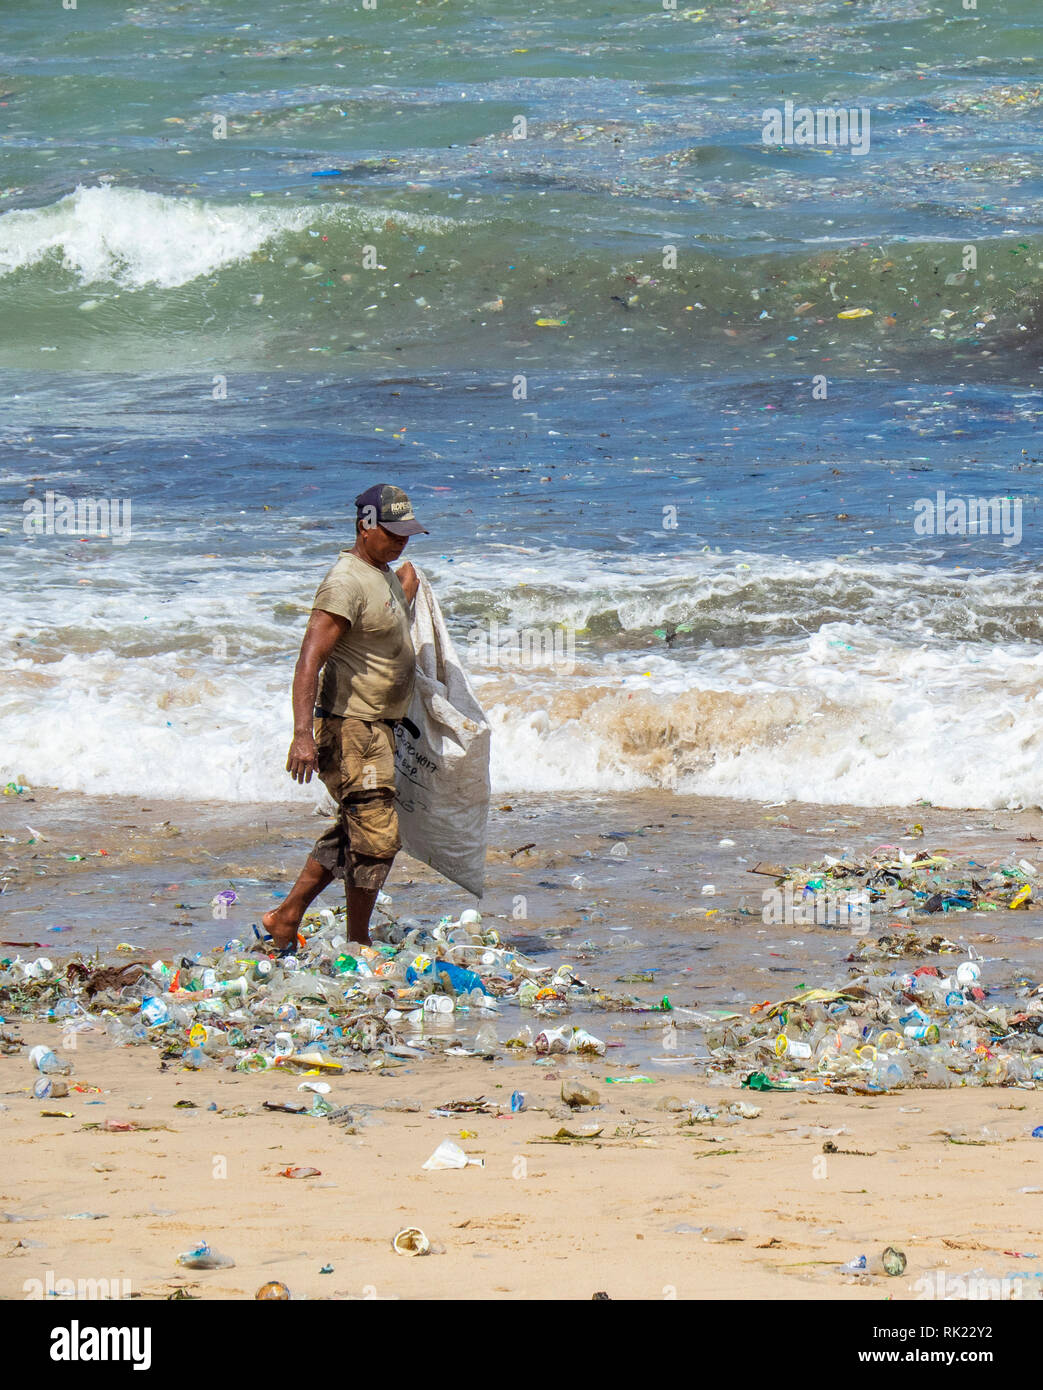 Pollution, lone man picking up plastic bottles, cups, straws and other litter washed up on the beach at Jimbaran Bay, Bali Indonesia.. - Stock Image